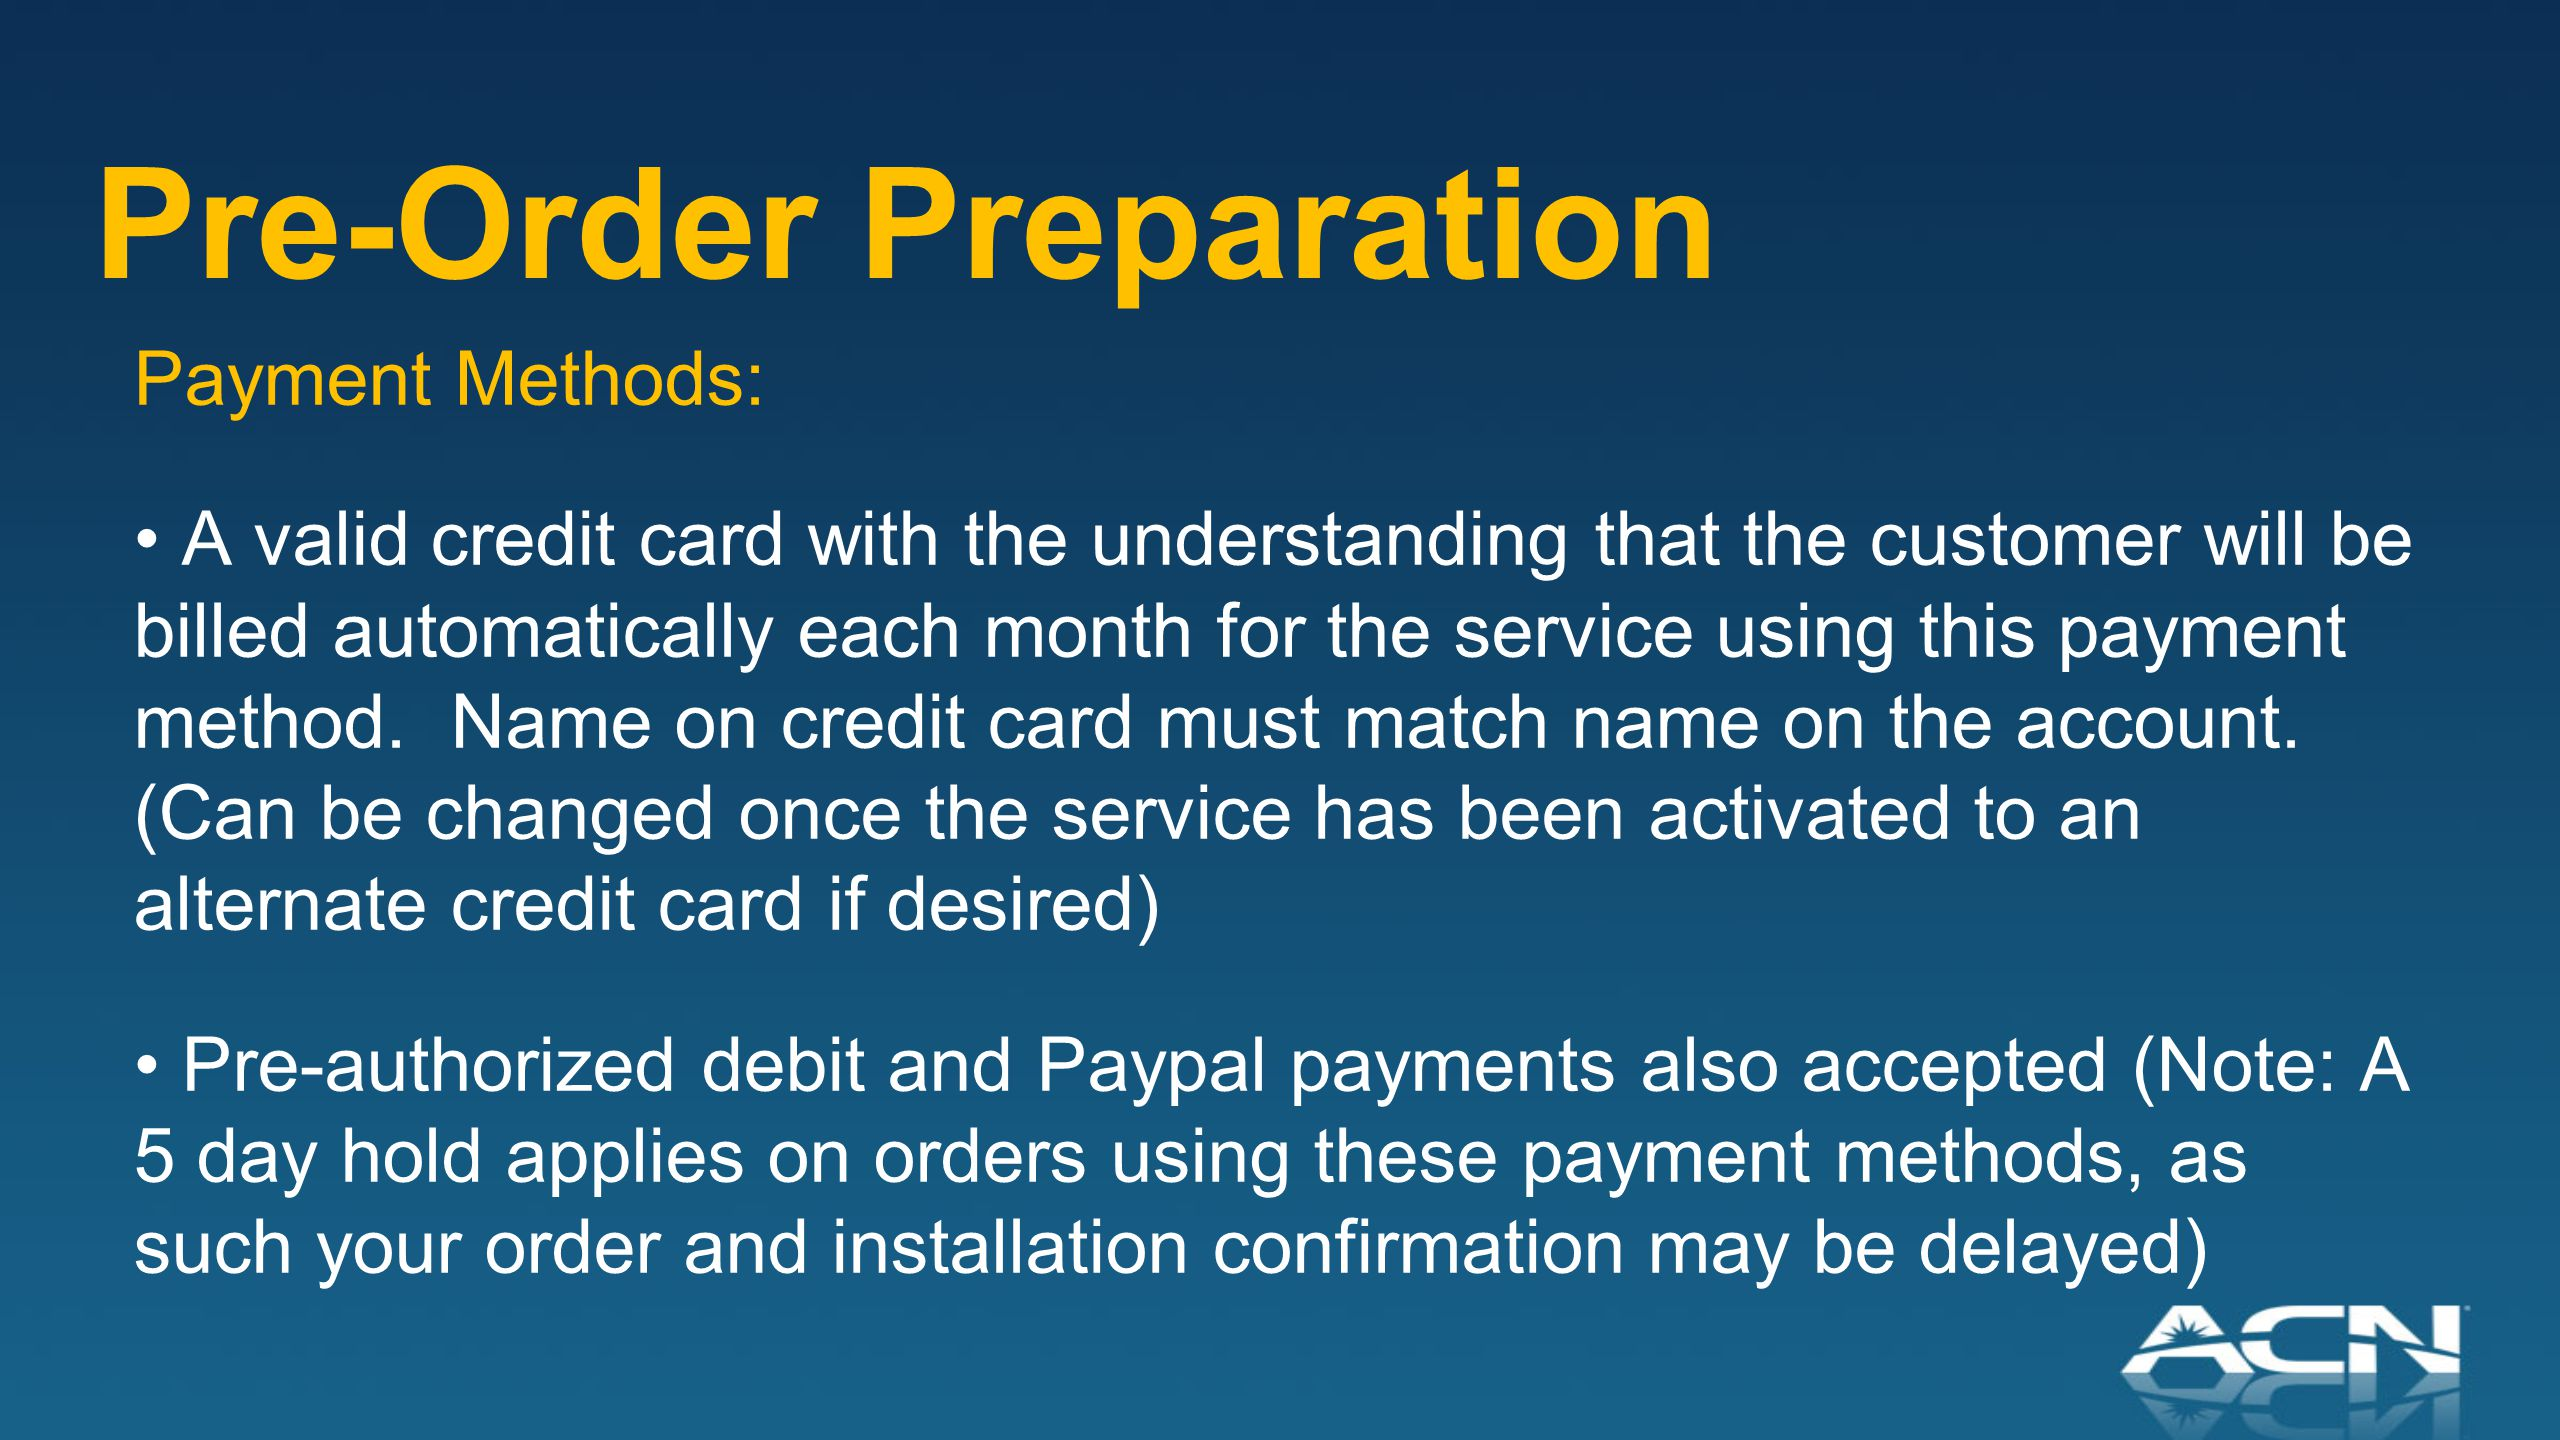 Pre-Order Preparation Payment Methods: A valid credit card with the understanding that the customer will be billed automatically each month for the service using this payment method.